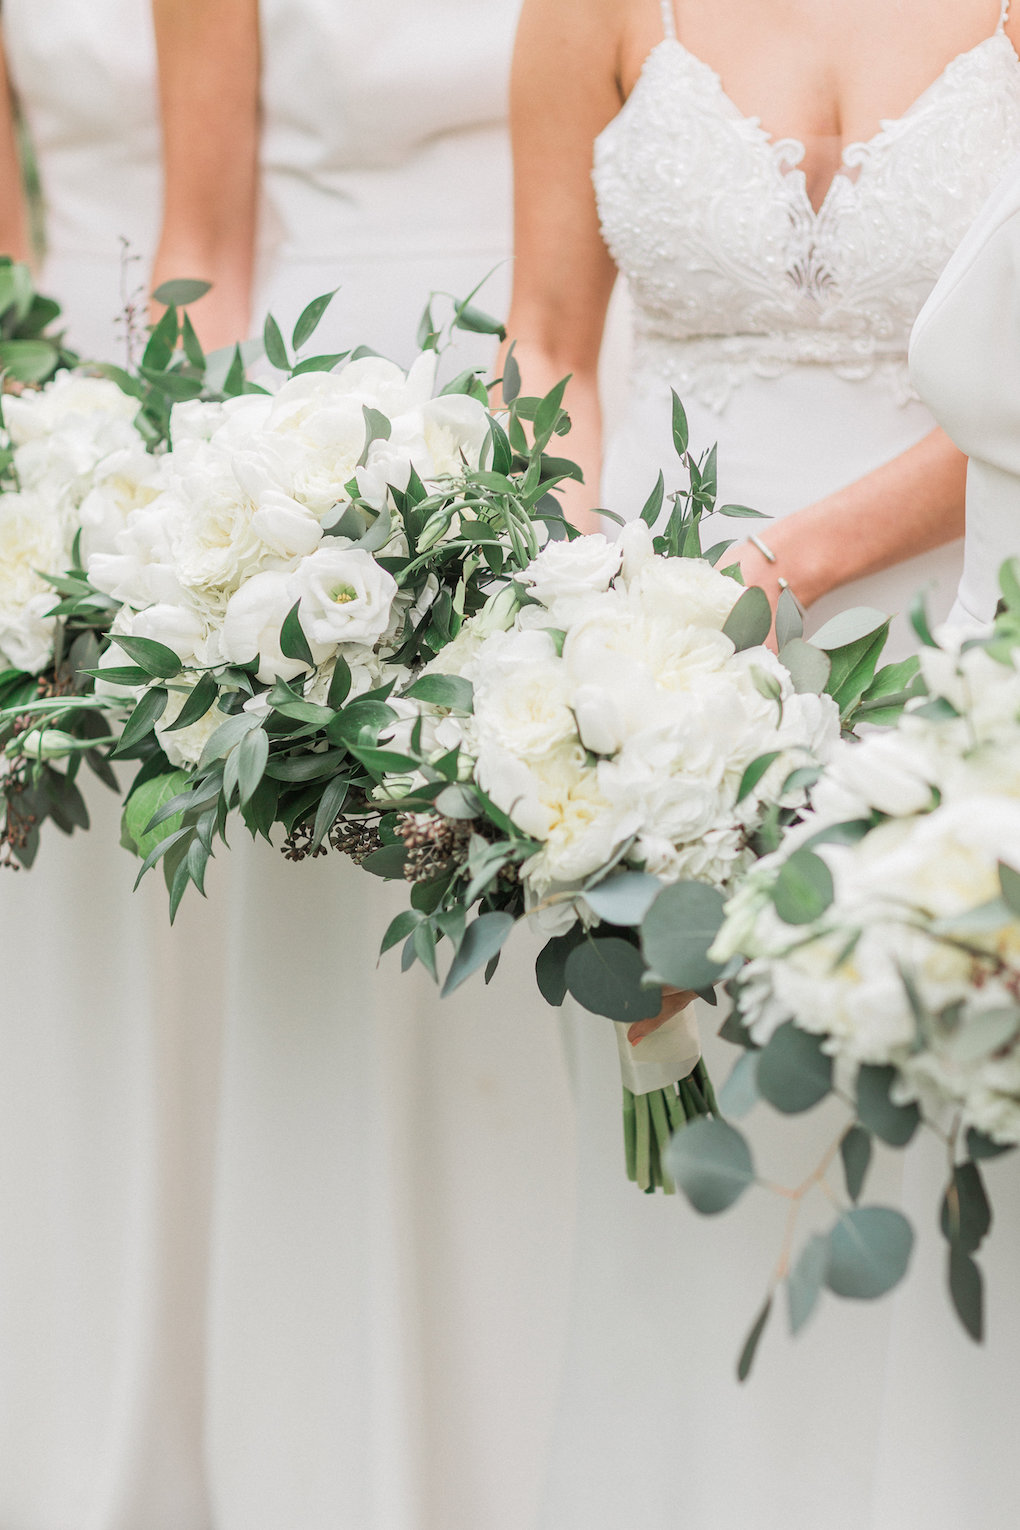 White wedding bouquets for chic wedding in Buffalo, NY planned by Exhale Events. Find more timeless wedding inspiration at exhale-events.com!